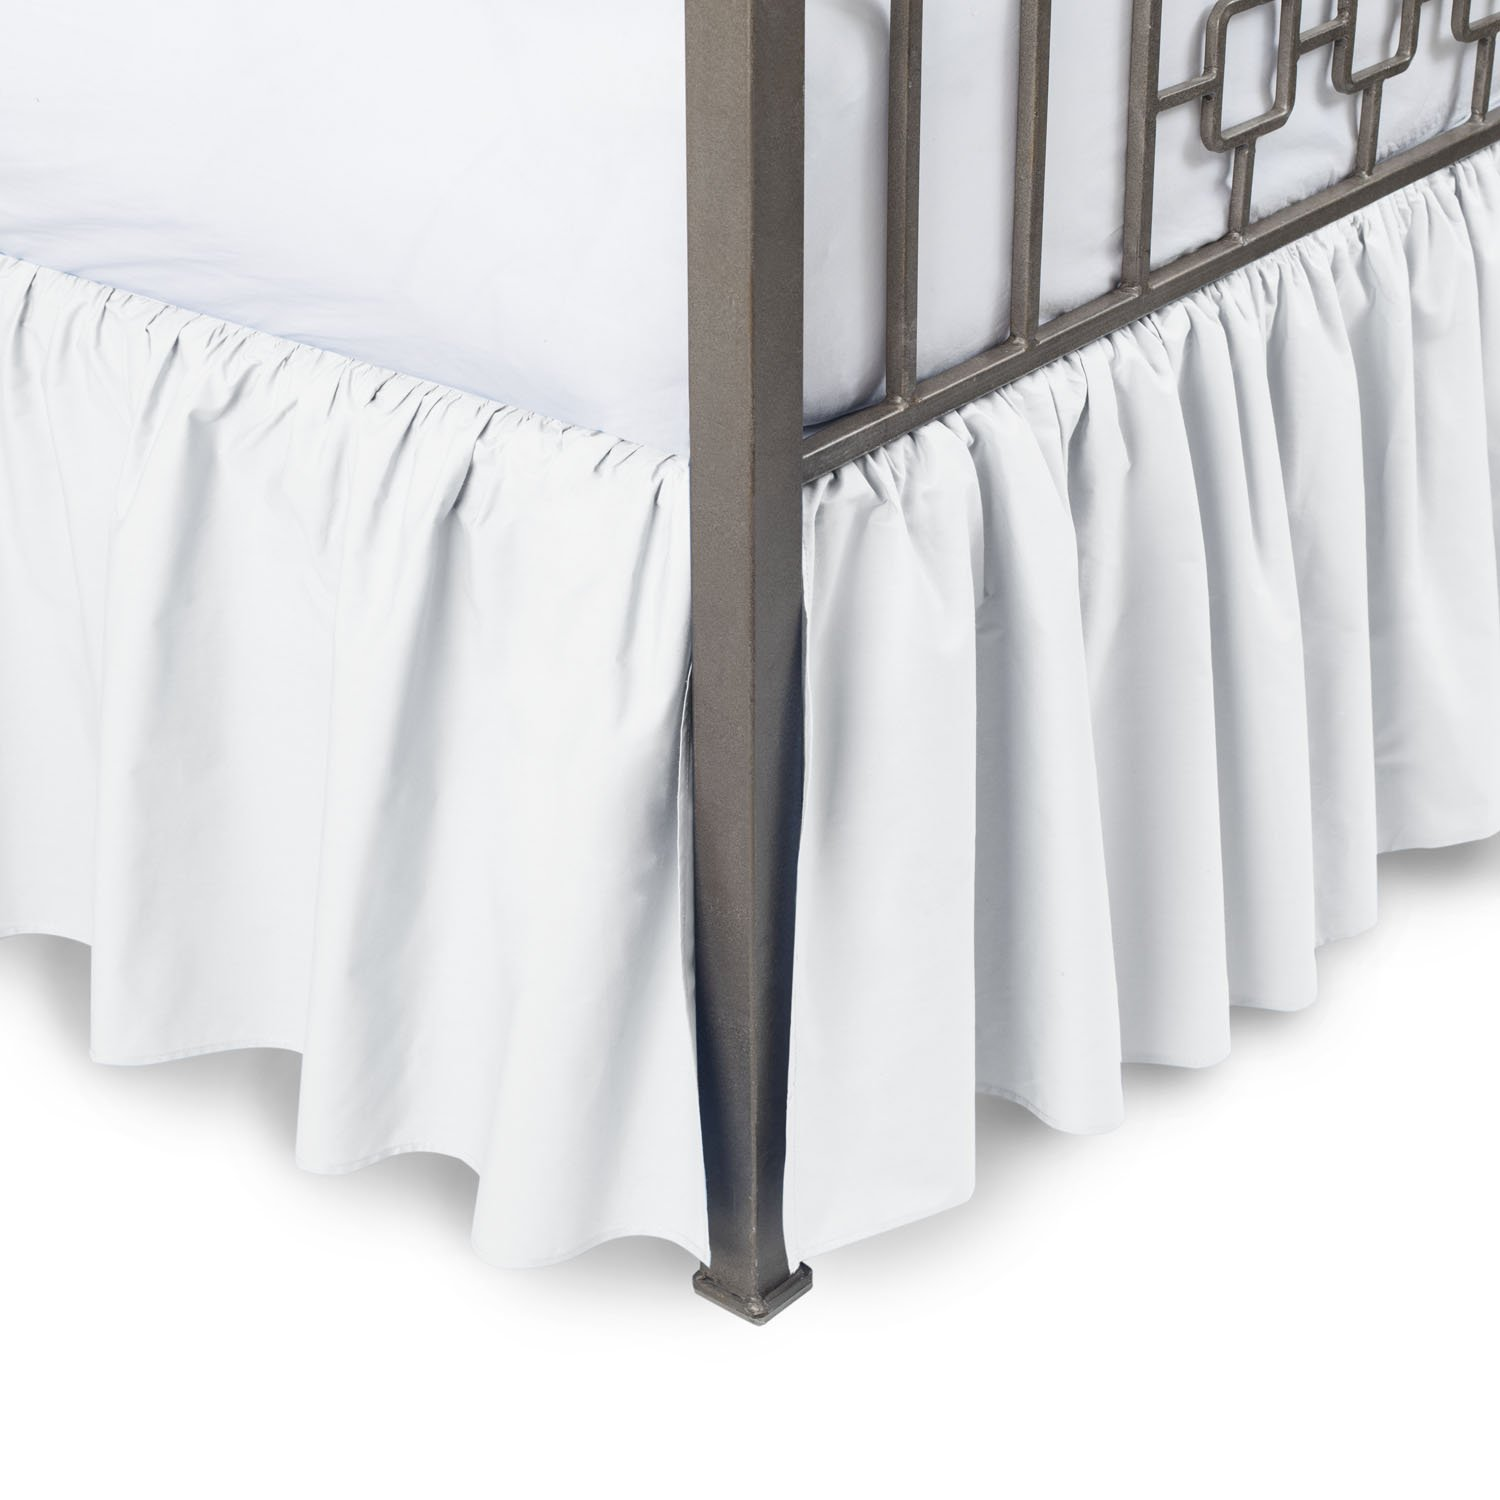 (Queen, White) - Amazon Luxurious 800TC Pure Cotton Dust Ruffle Bed Skirt 60cm Drop length 100% Egyptian Cotton White Queen Size B072M61W3V ホワイト クイーン